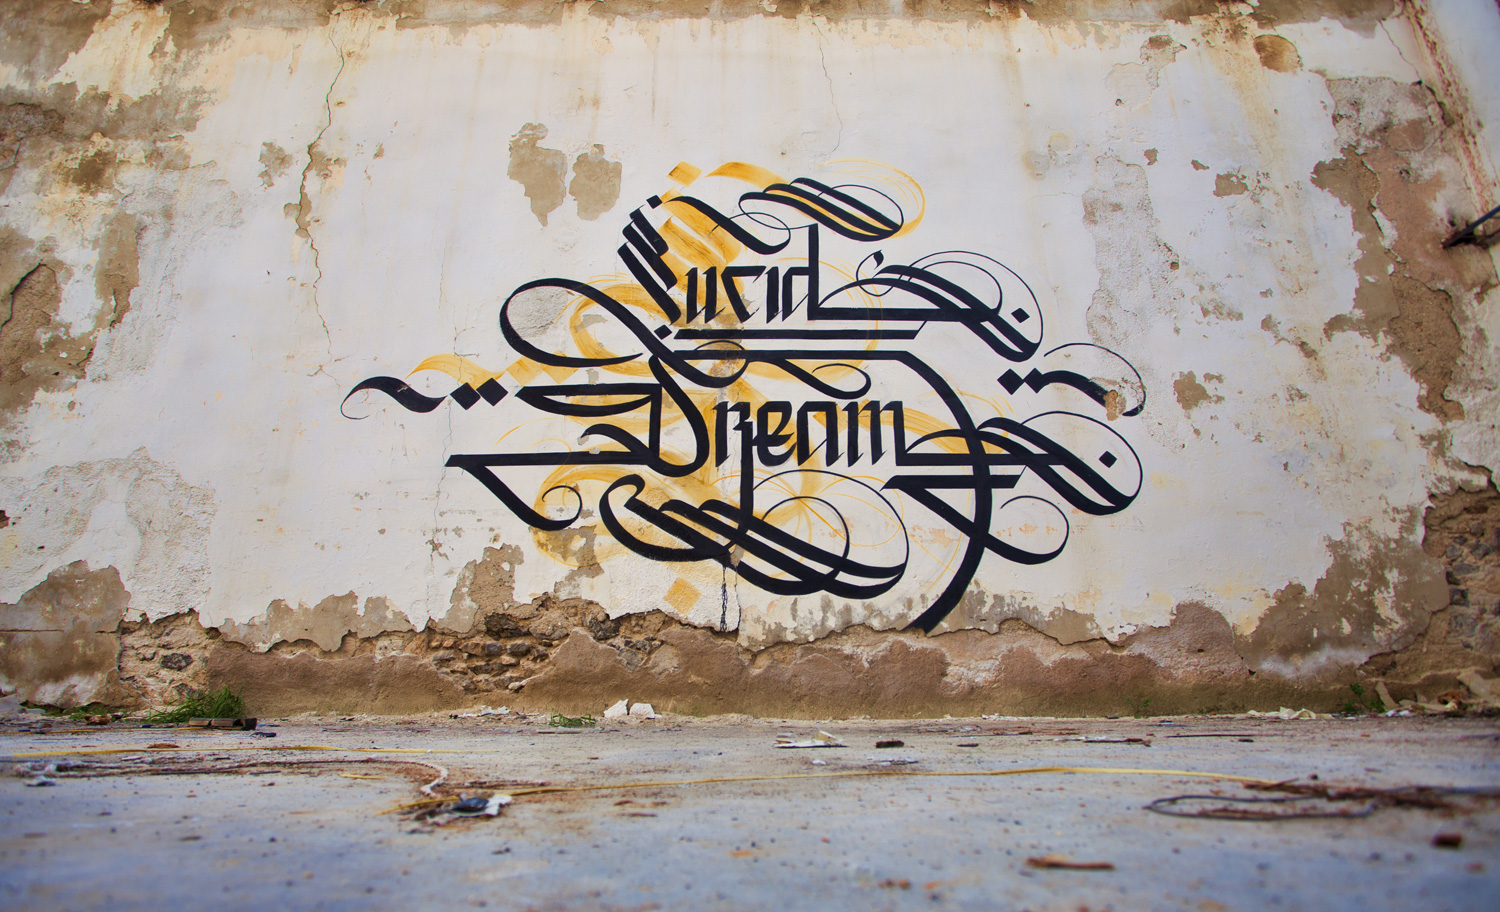 simon-silaidis-lucid-dream-for-urban-calligraphy-01